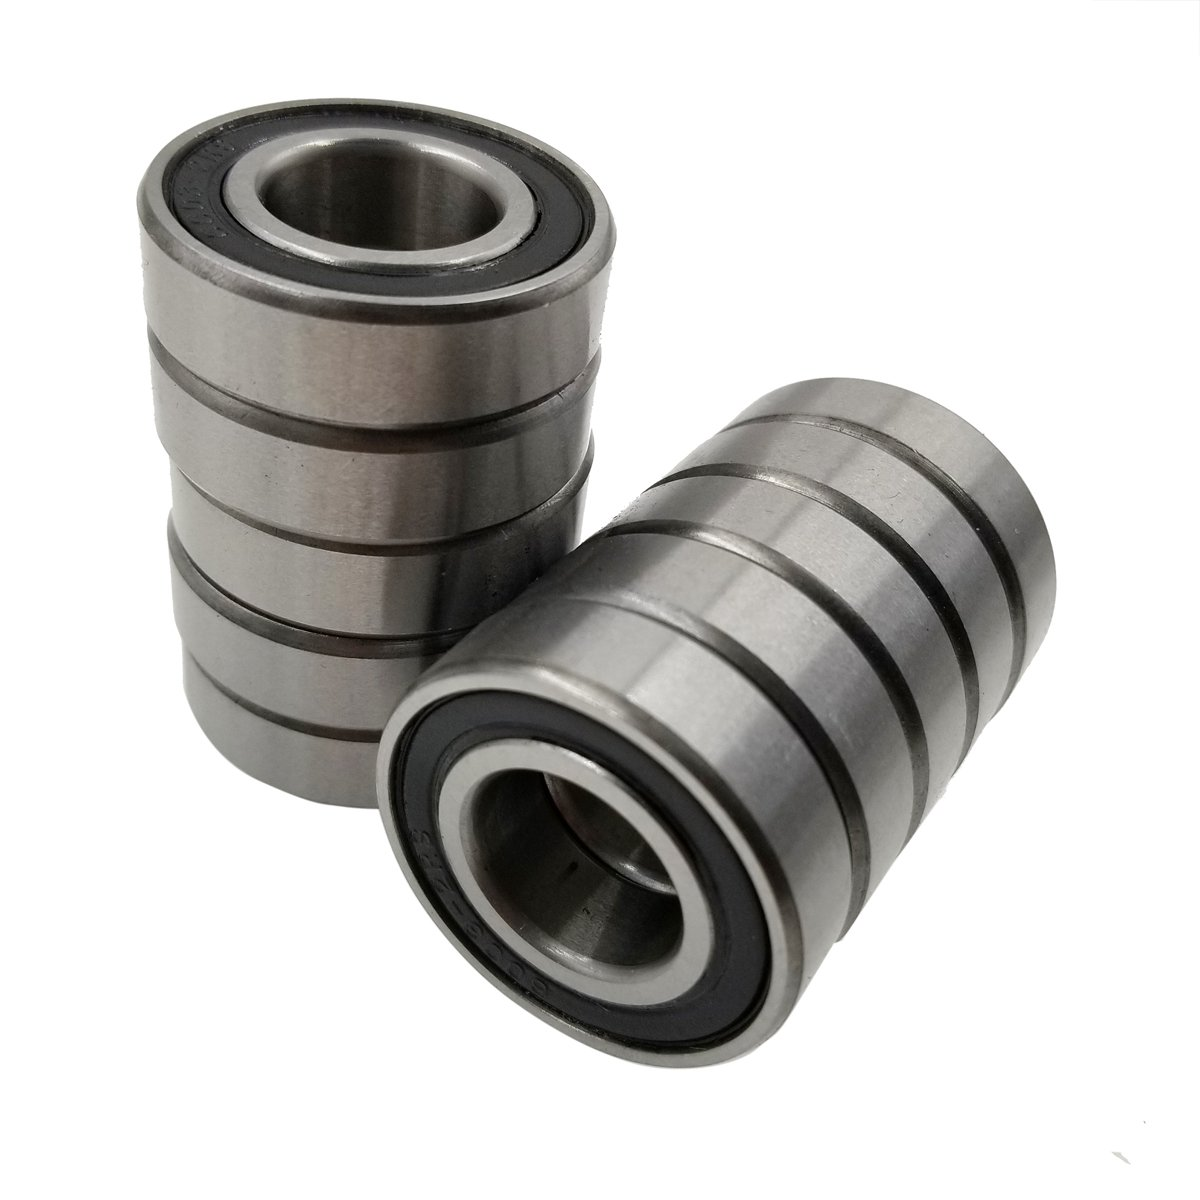 Double Seal and Pre-Lubricated M-Jump 10 PCS 6003-2RS Bearings,Stable Performance and Cost-Effective Deep Groove Ball Bearings,17x35x10mm